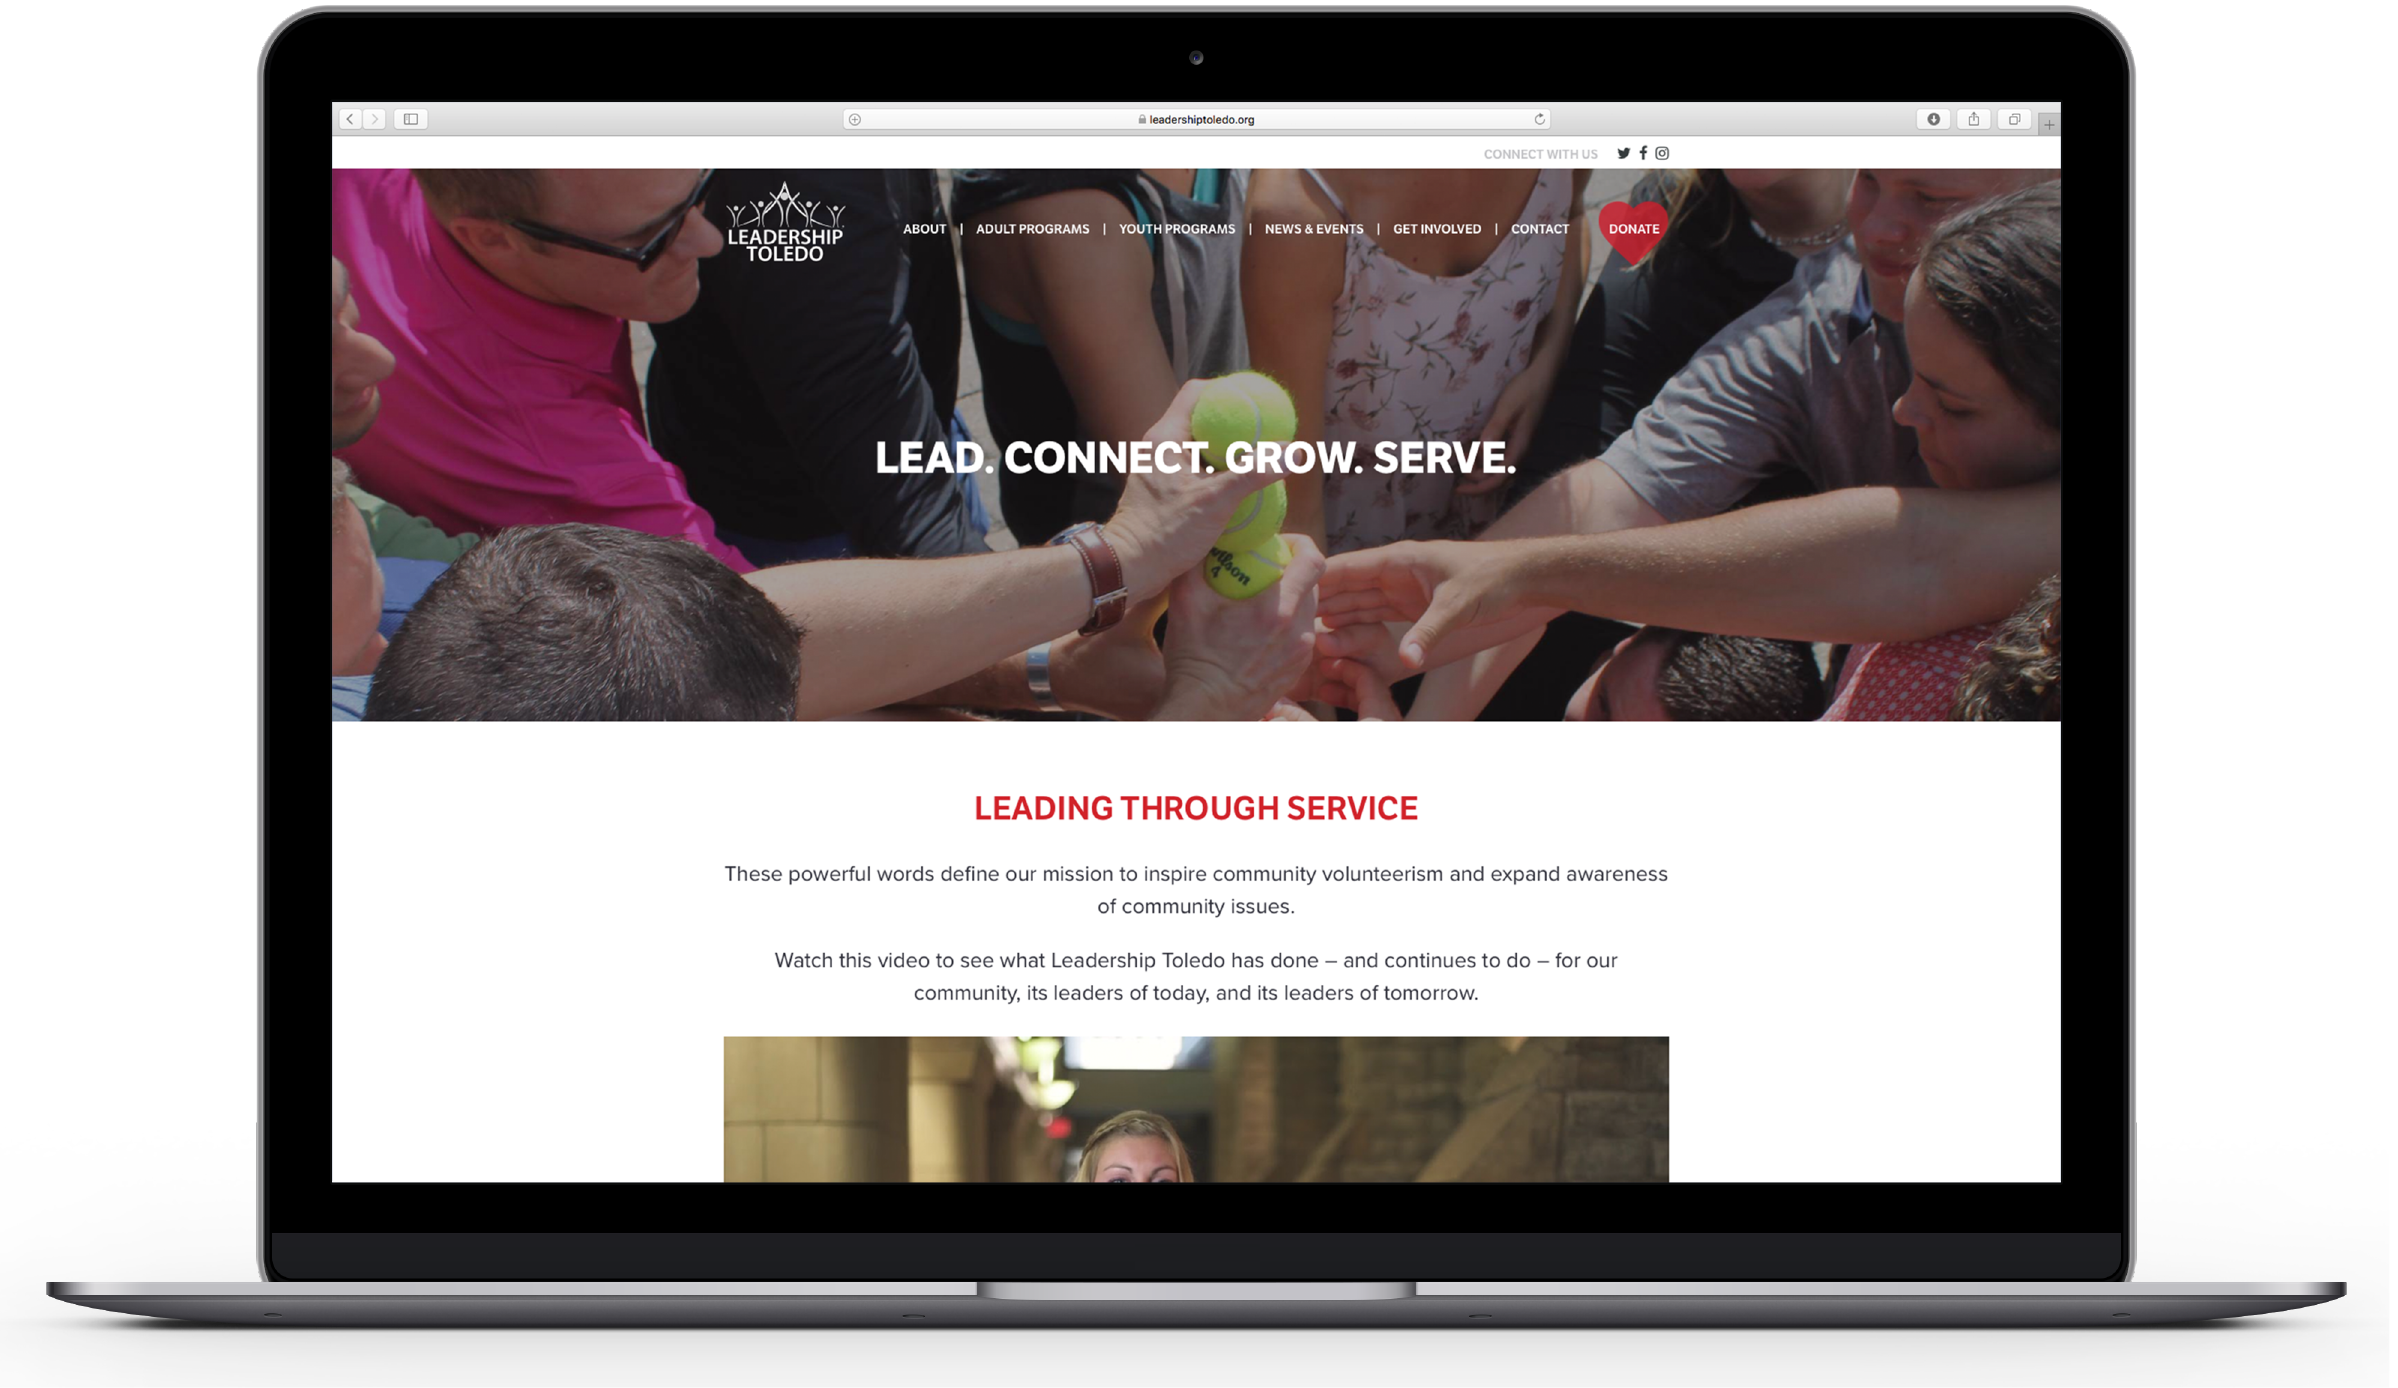 CG developed leadershiptoledo.com using many images that convey what their organization does—while also bringing a human element to the design.